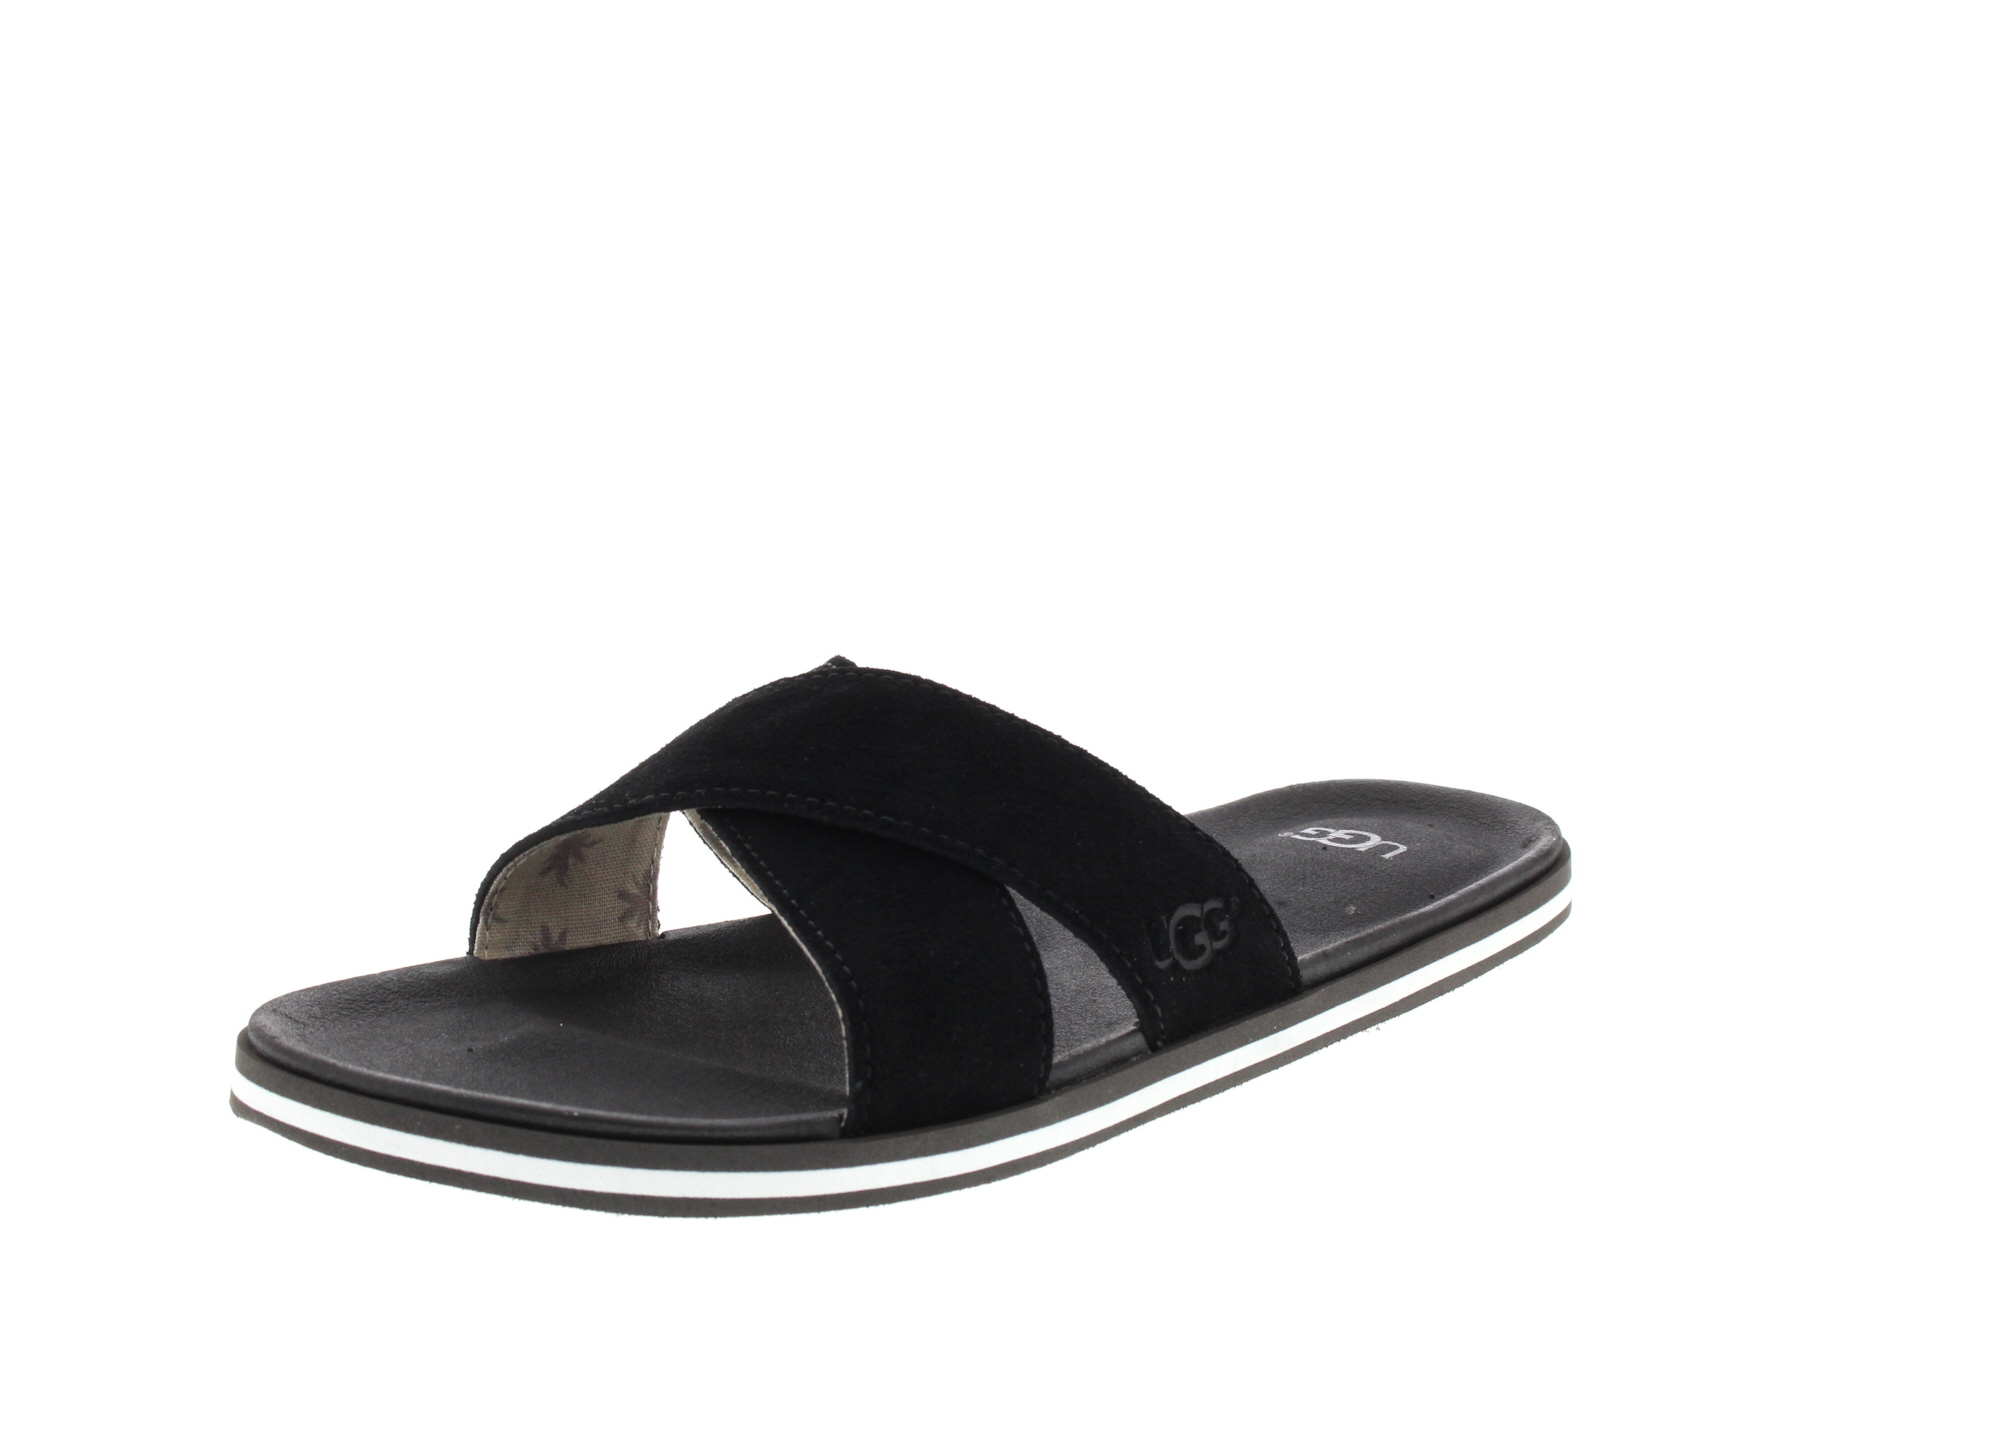 UGG Herrenschuhe - BEACH SLIDE 1020086 - black_0